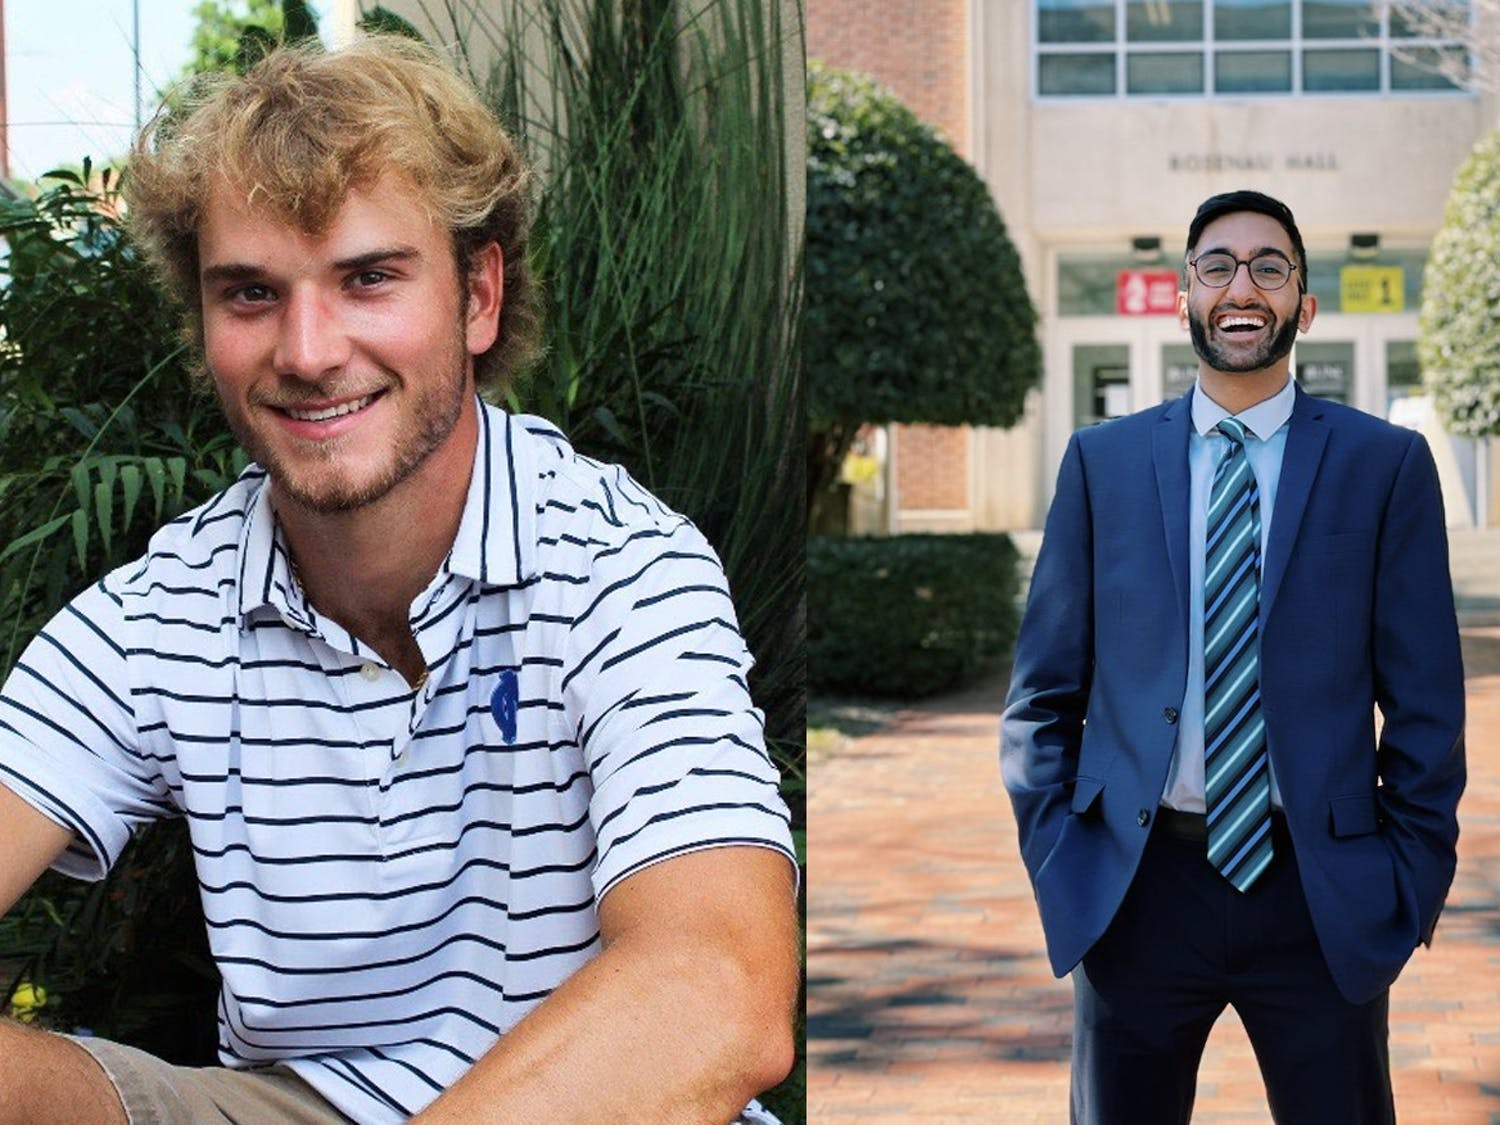 Kade Sutton (left) was elected president of the Carolina Athletic Association run-off election while Neel Swamy (right) was elected president of the Graduate Professional Student Government. Photos courtesy of Sutton and Swamy.